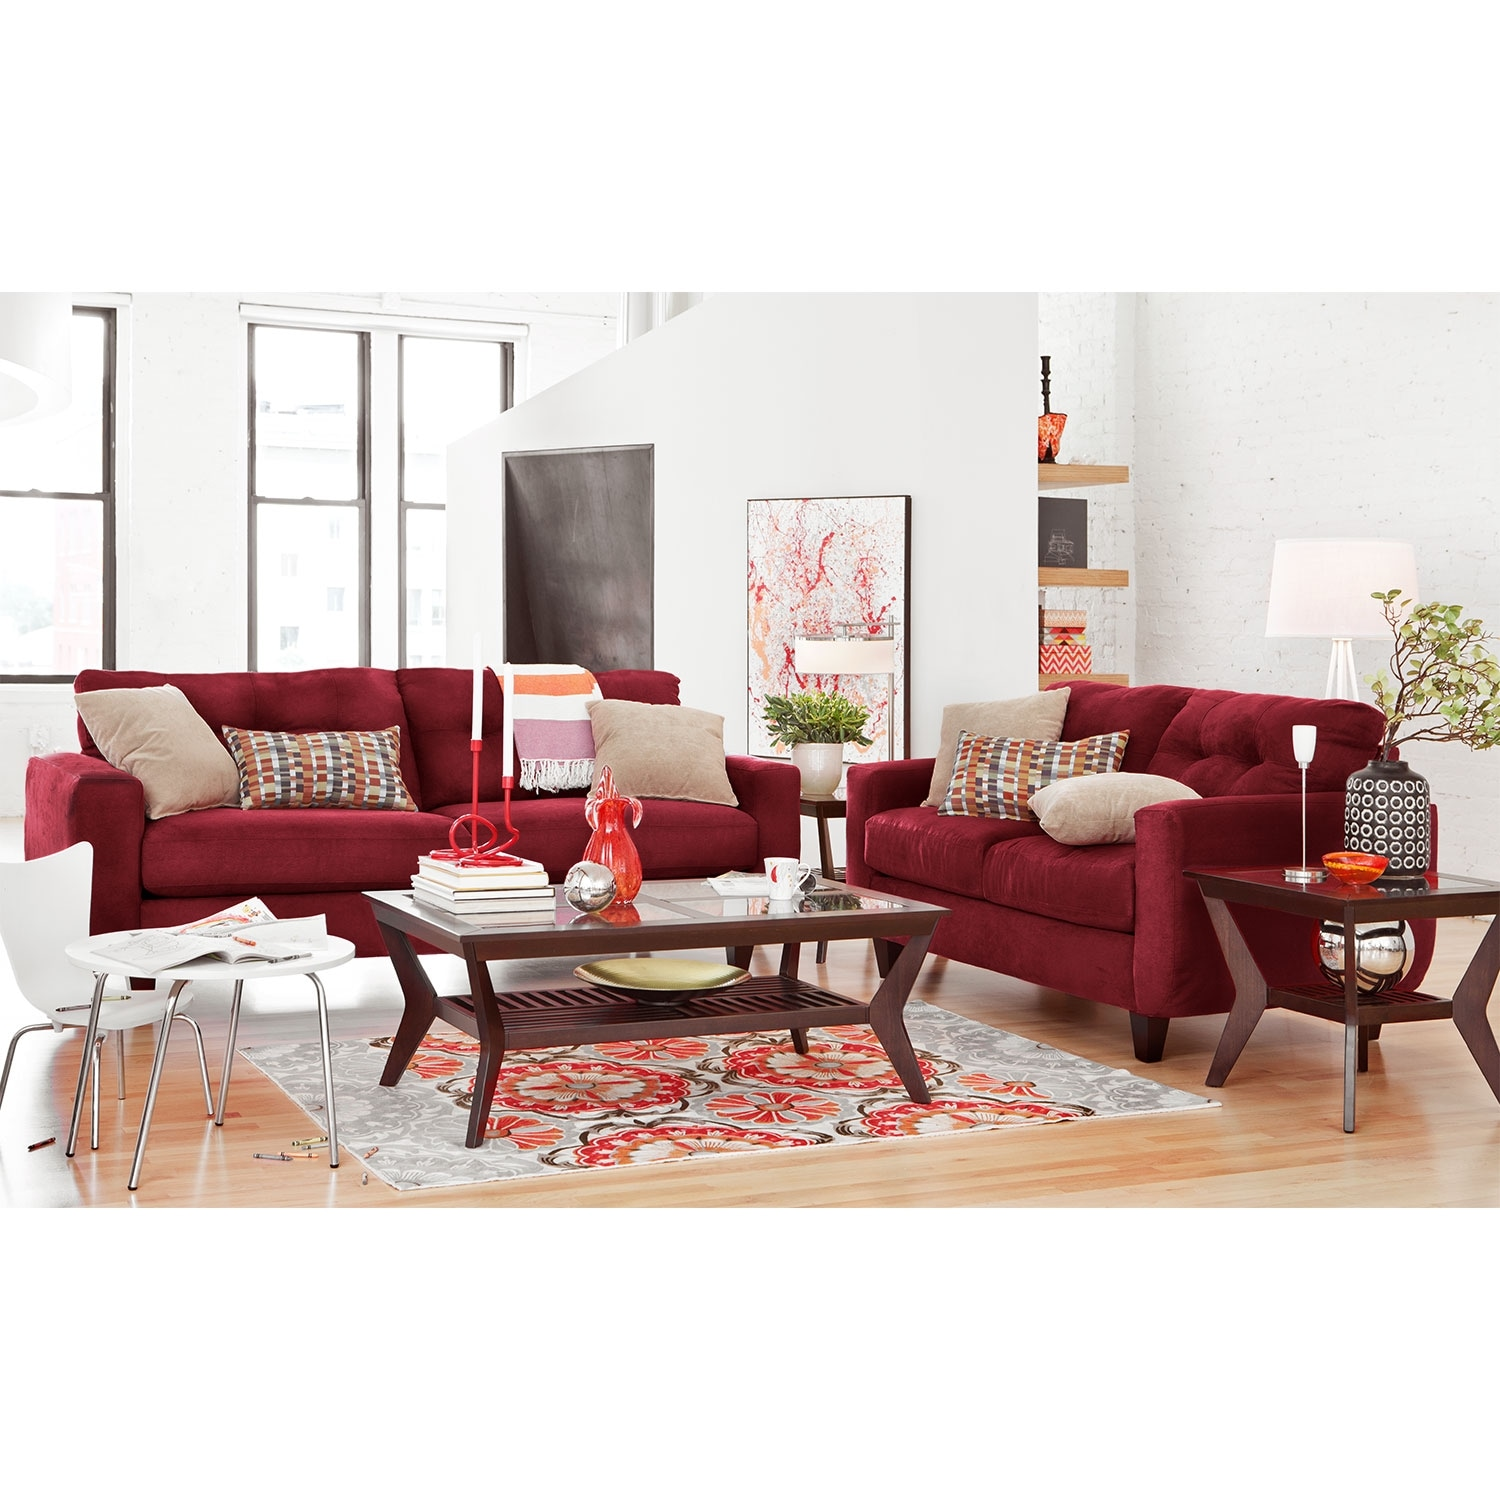 West Village Sofa And Loveseat Set Red American